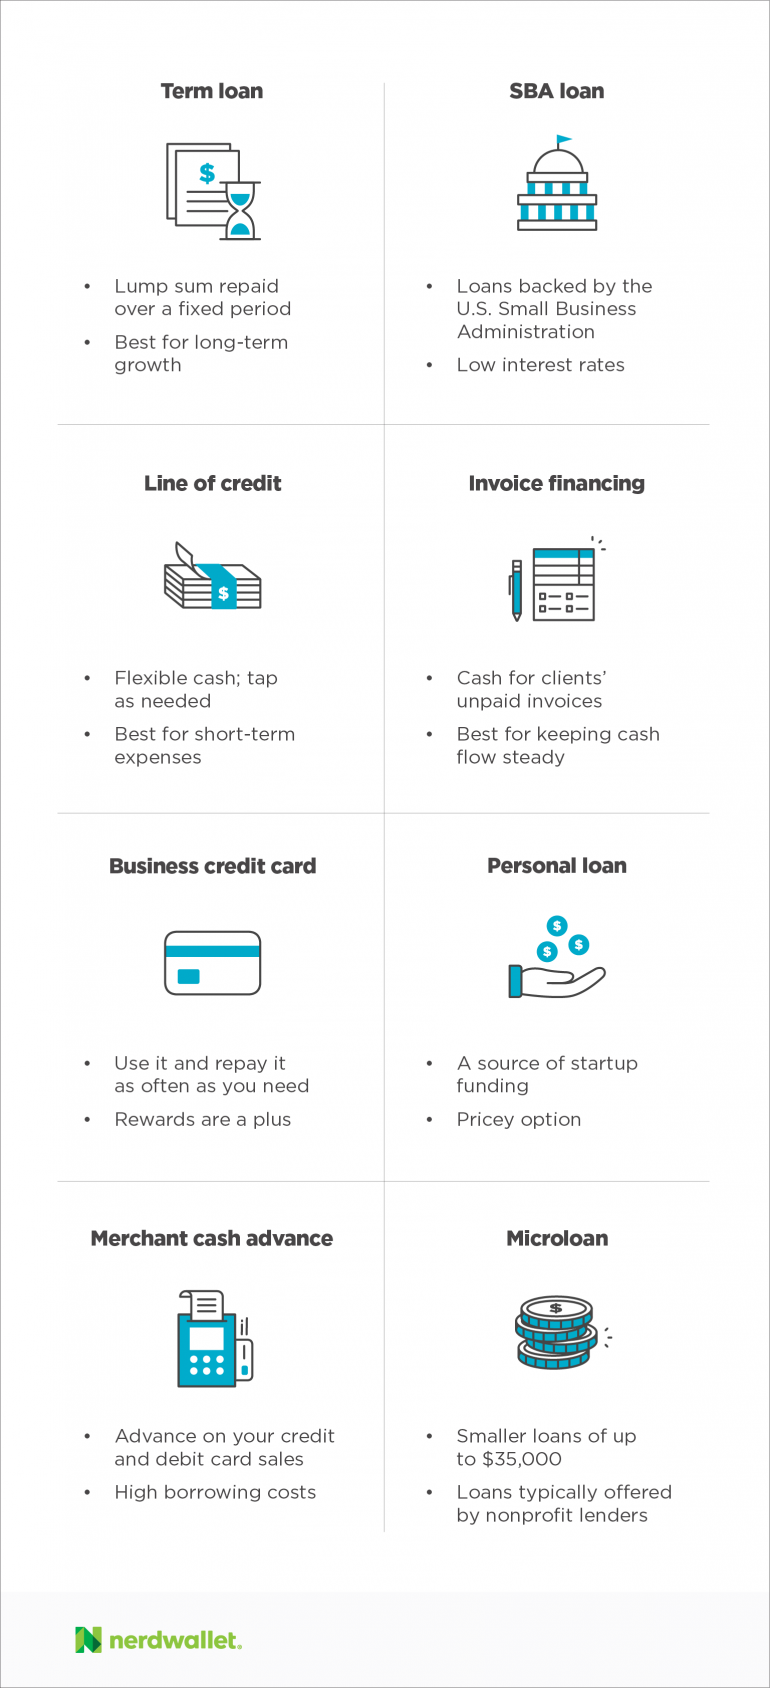 How to get a small business loan in 5 steps nerdwallet small business financing in simple terms reheart